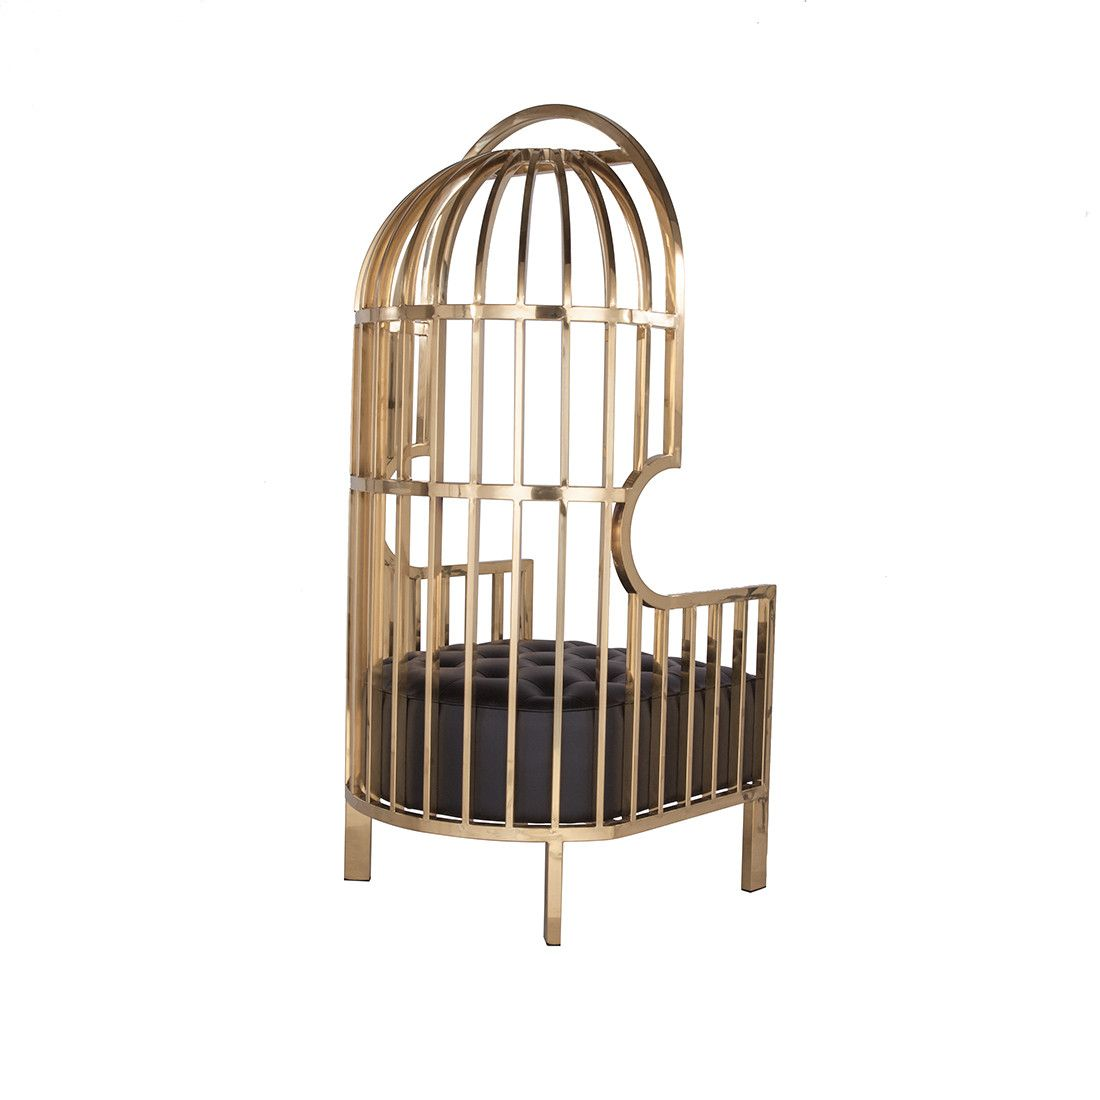 Birdcage Chair Gold Birdcage Chair Oak Dining Chairs Outdoor Tables And Chairs